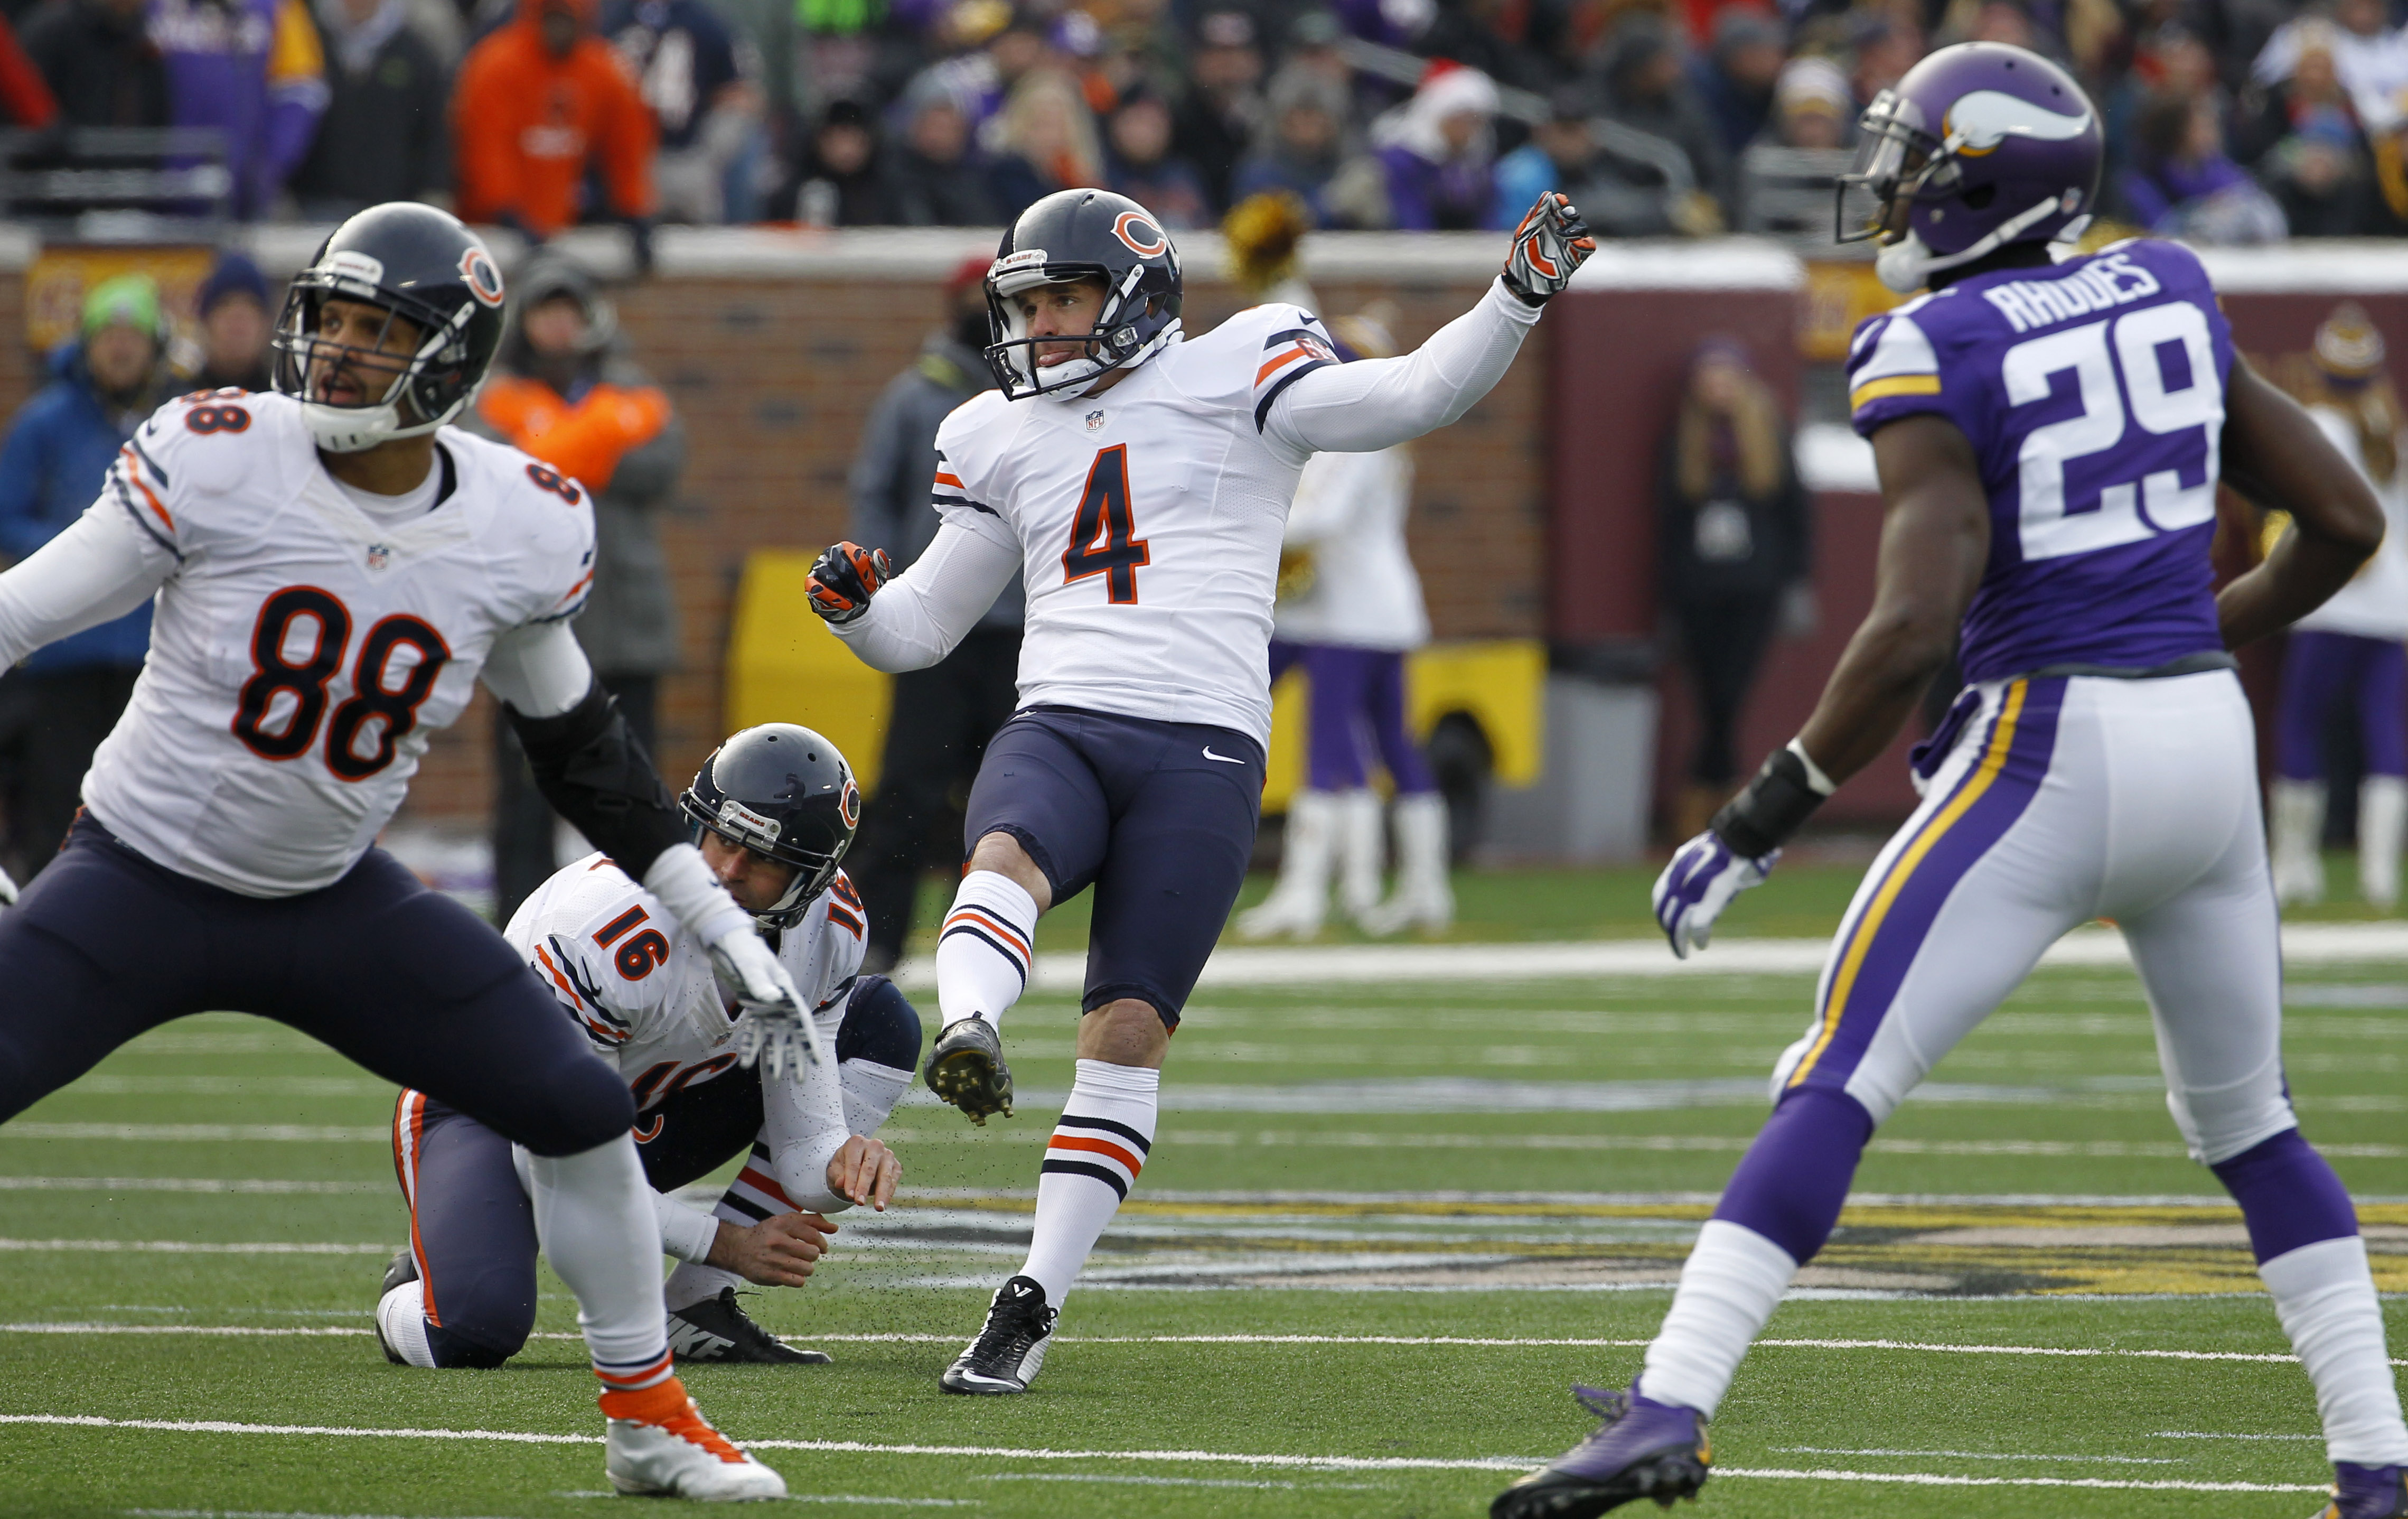 FILE - In this Dec. 28, 2014 file photo, Chicago Bears kicker Jay Feely (4) watches his 48-yard field goal during the first half of an NFL football game against the Minnesota Vikings, in Minneapolis. Feely has some conflicted emotions in his new role as C